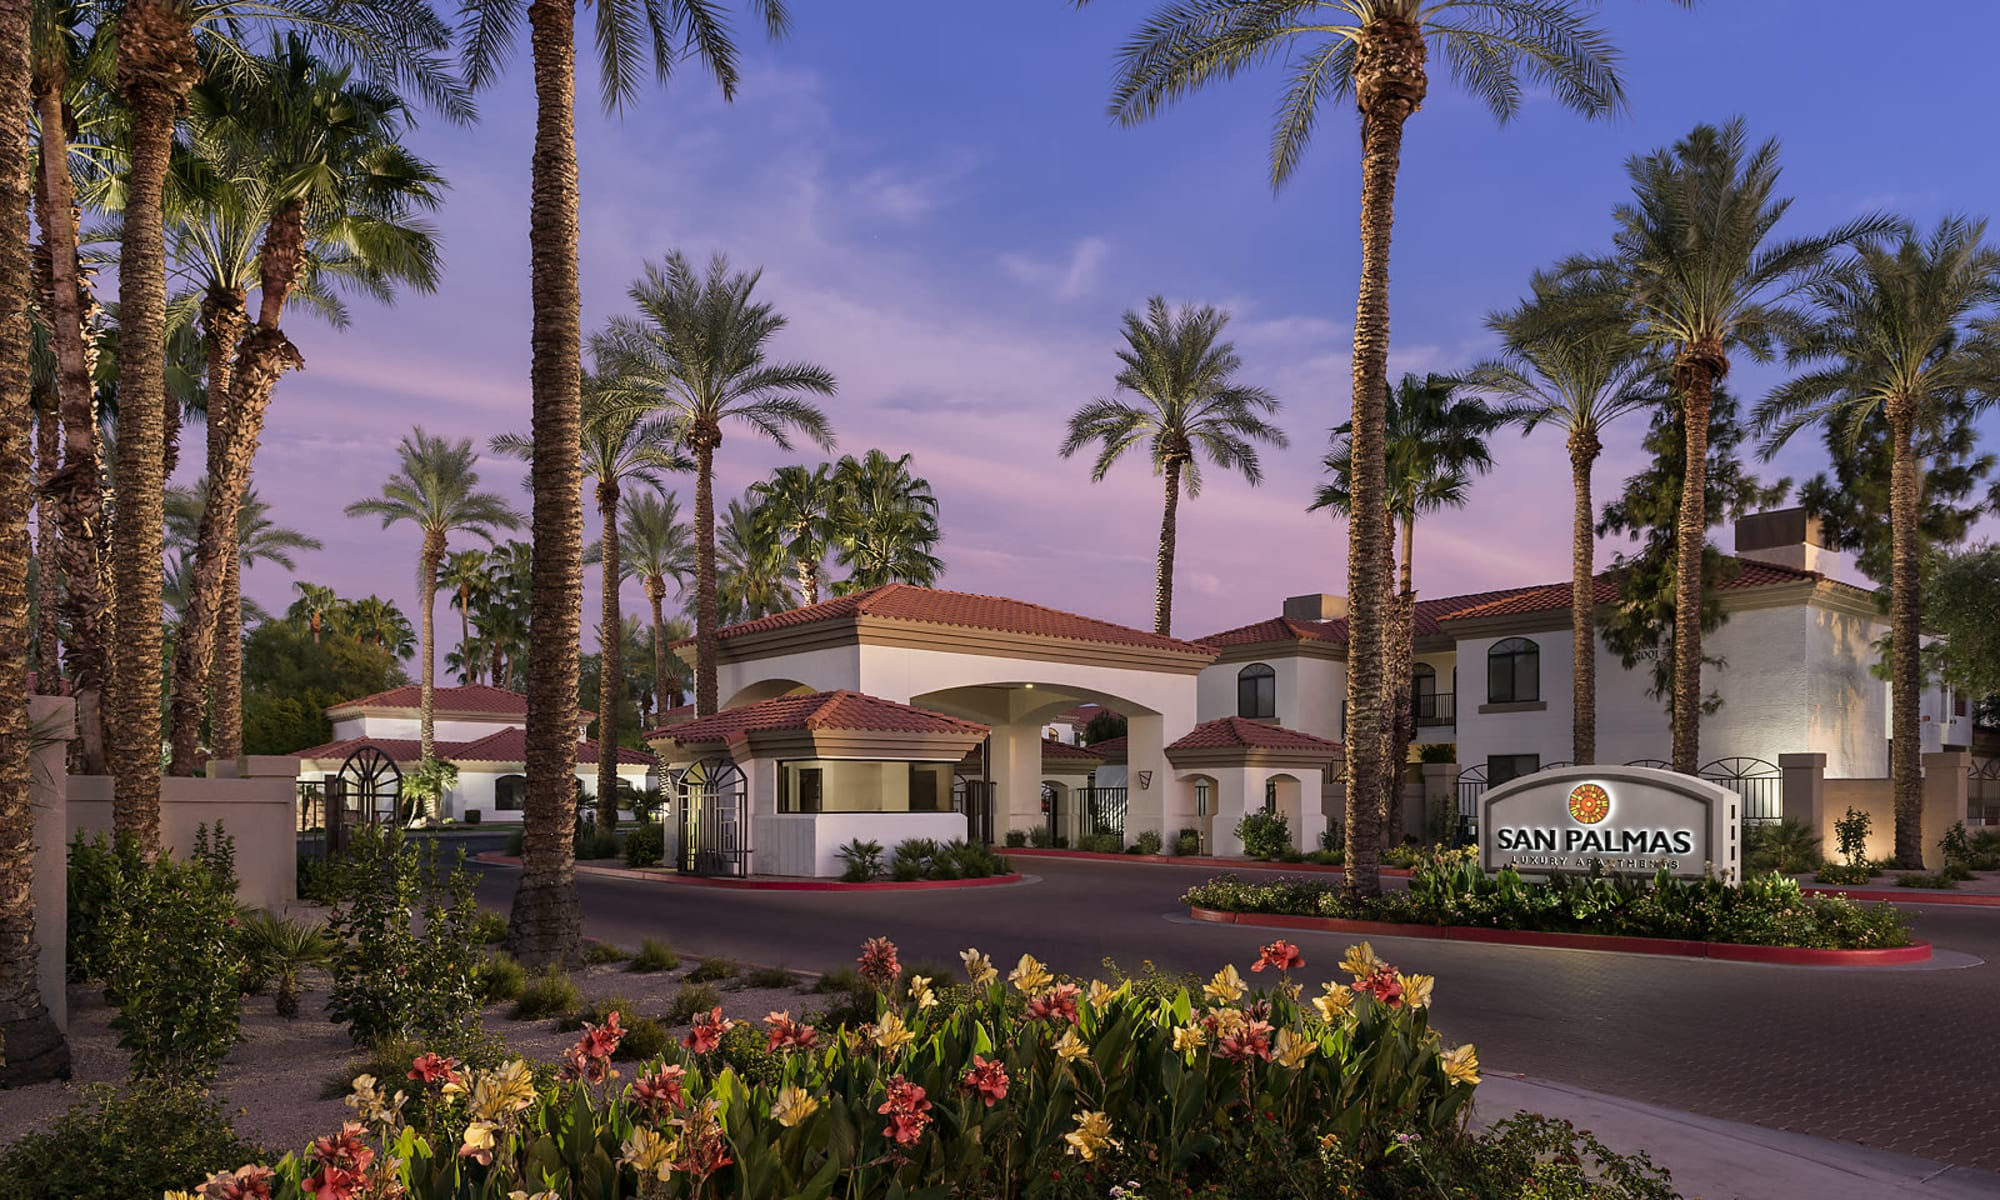 Apartments at San Palmas in Chandler, Arizona